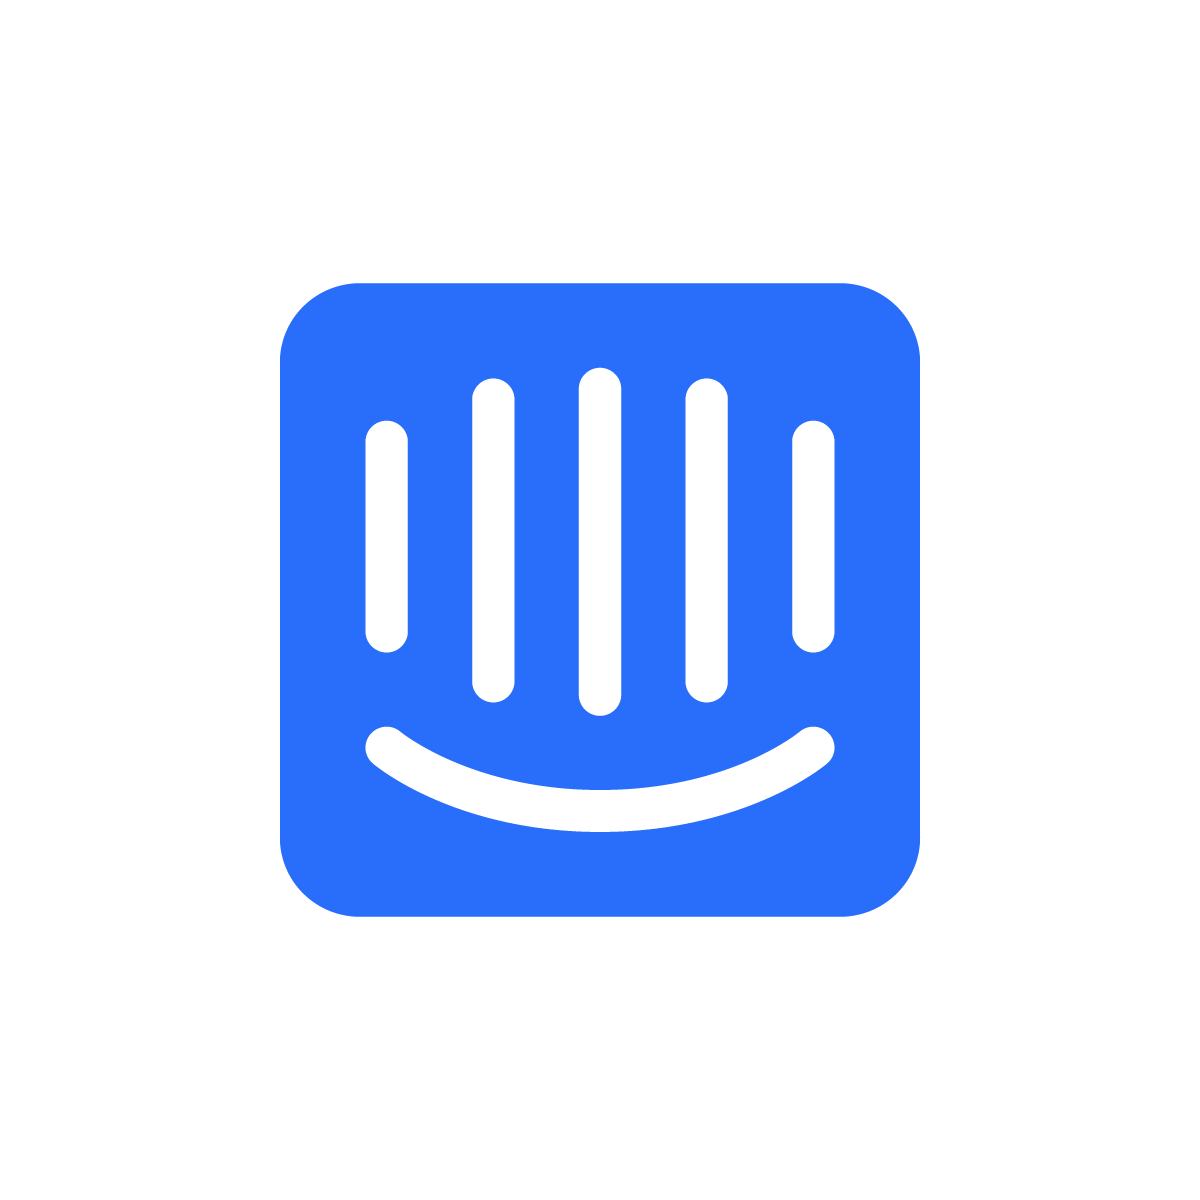 Contact us on Intercom messenger